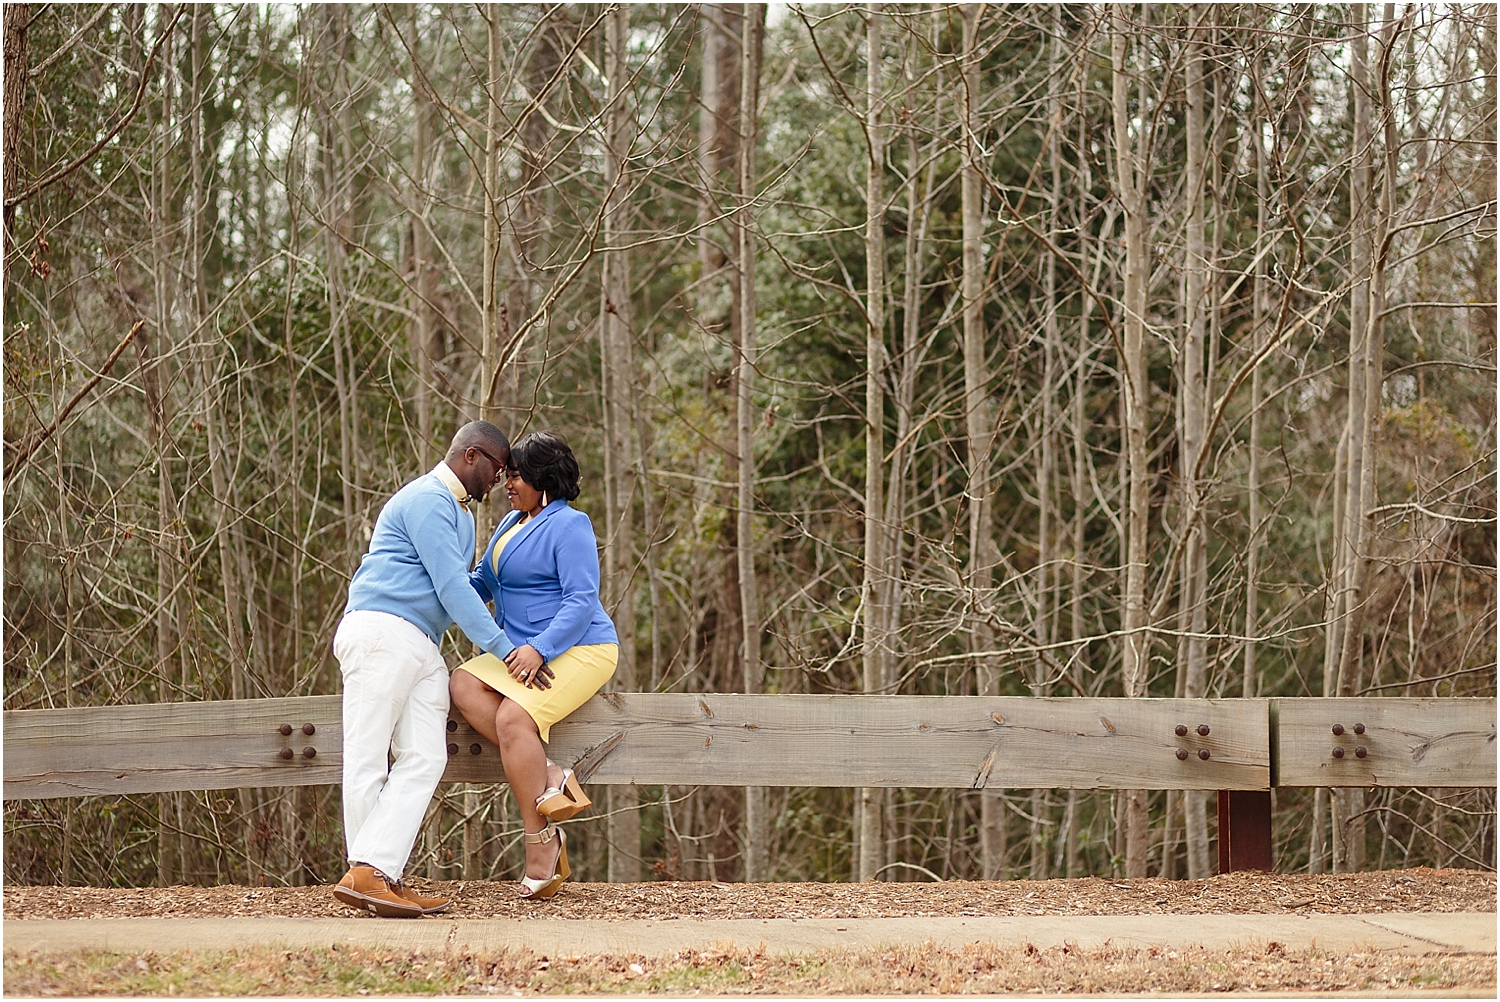 20150131-engagement-outdoor-winter-greenville-13_blog.jpg